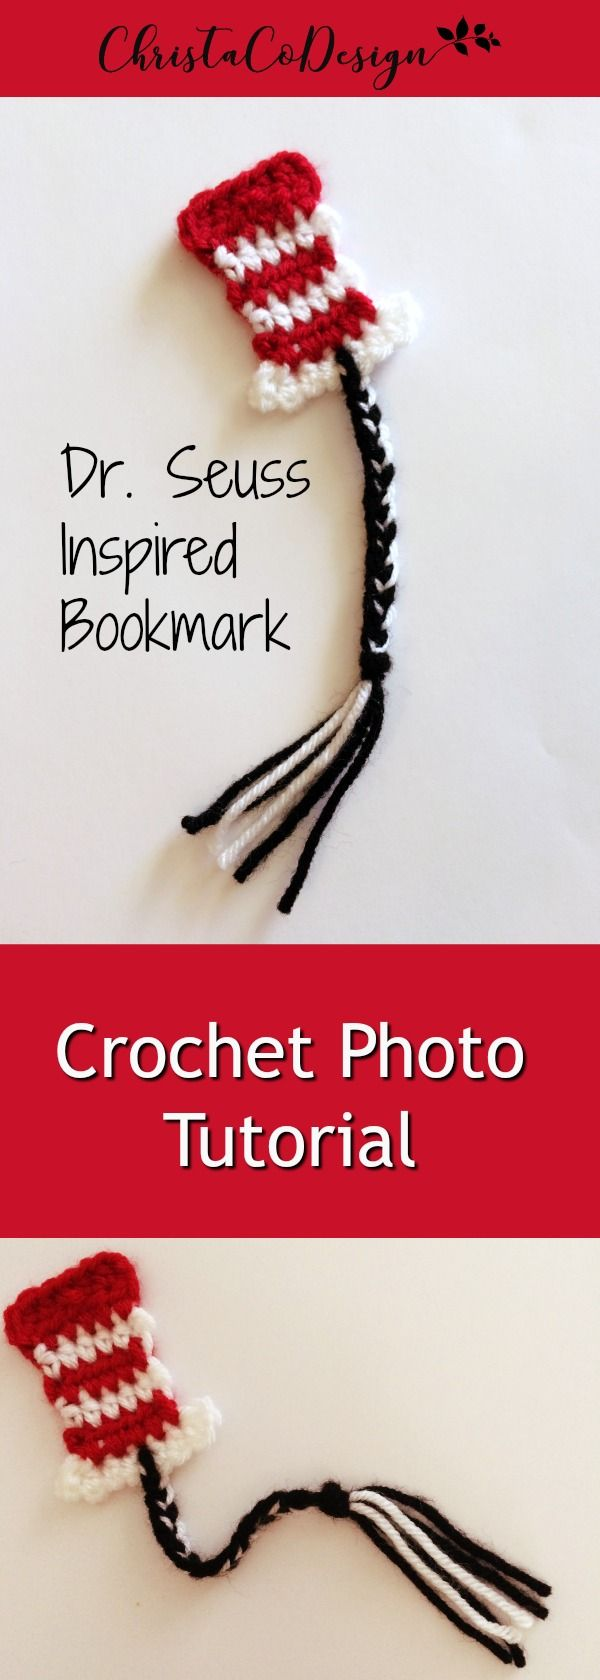 Dr. Seuss inspired bookmark | crochet bookmark | photo tutorial | crochet tutorial | easy crochet pattern | beginner crochet tutorial | cat in the hat | bookmarks | diy bookmark